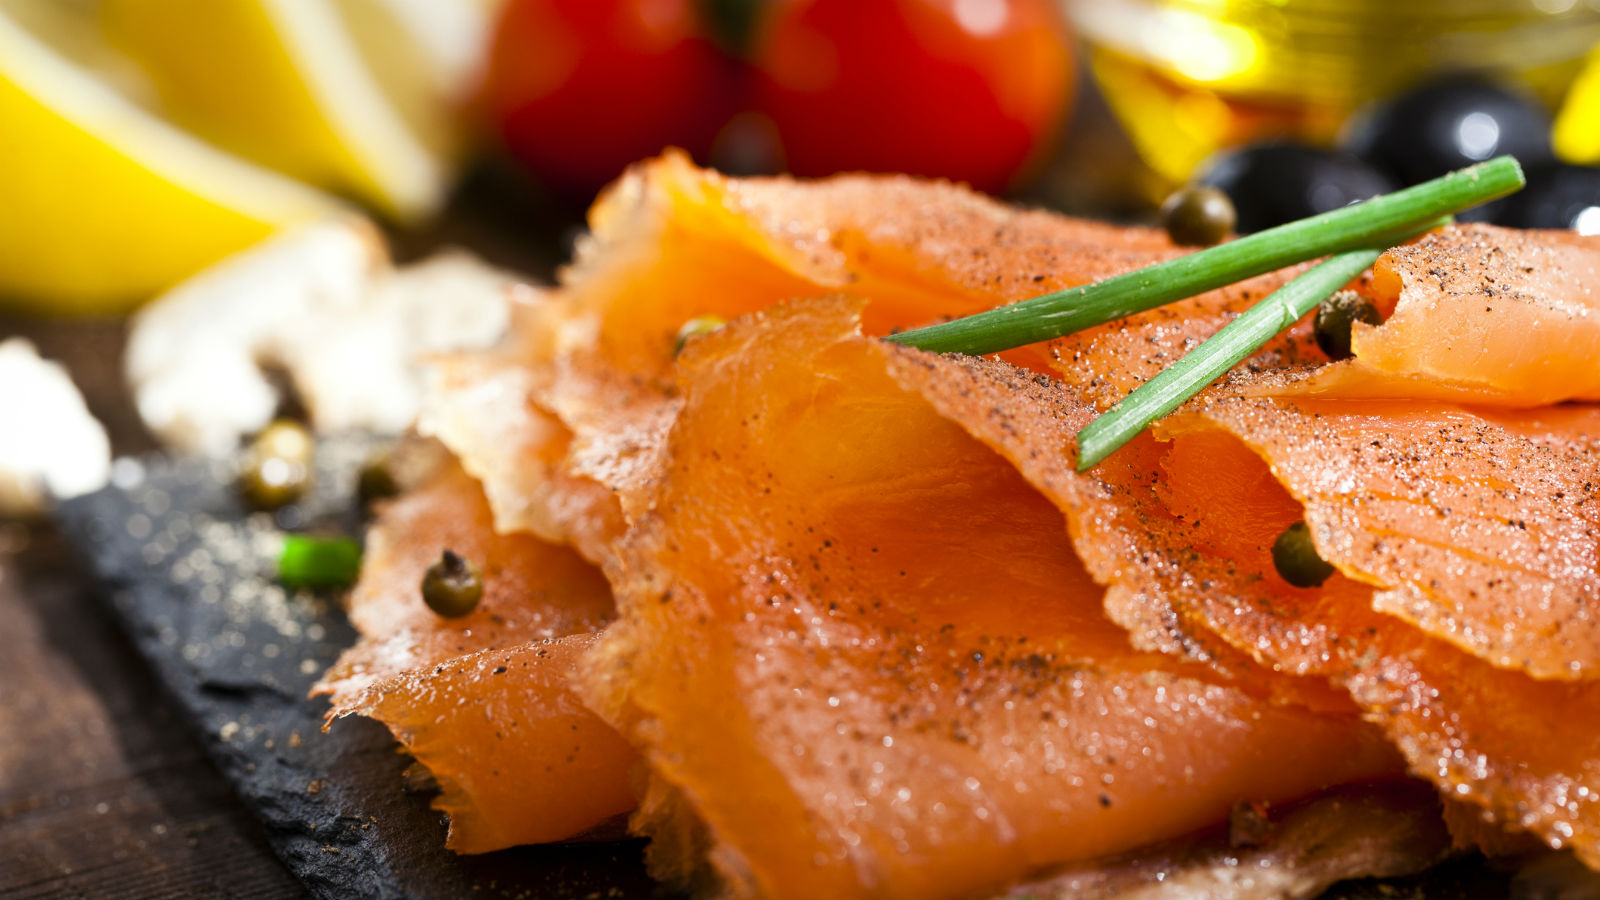 The Secret to the Best Lox